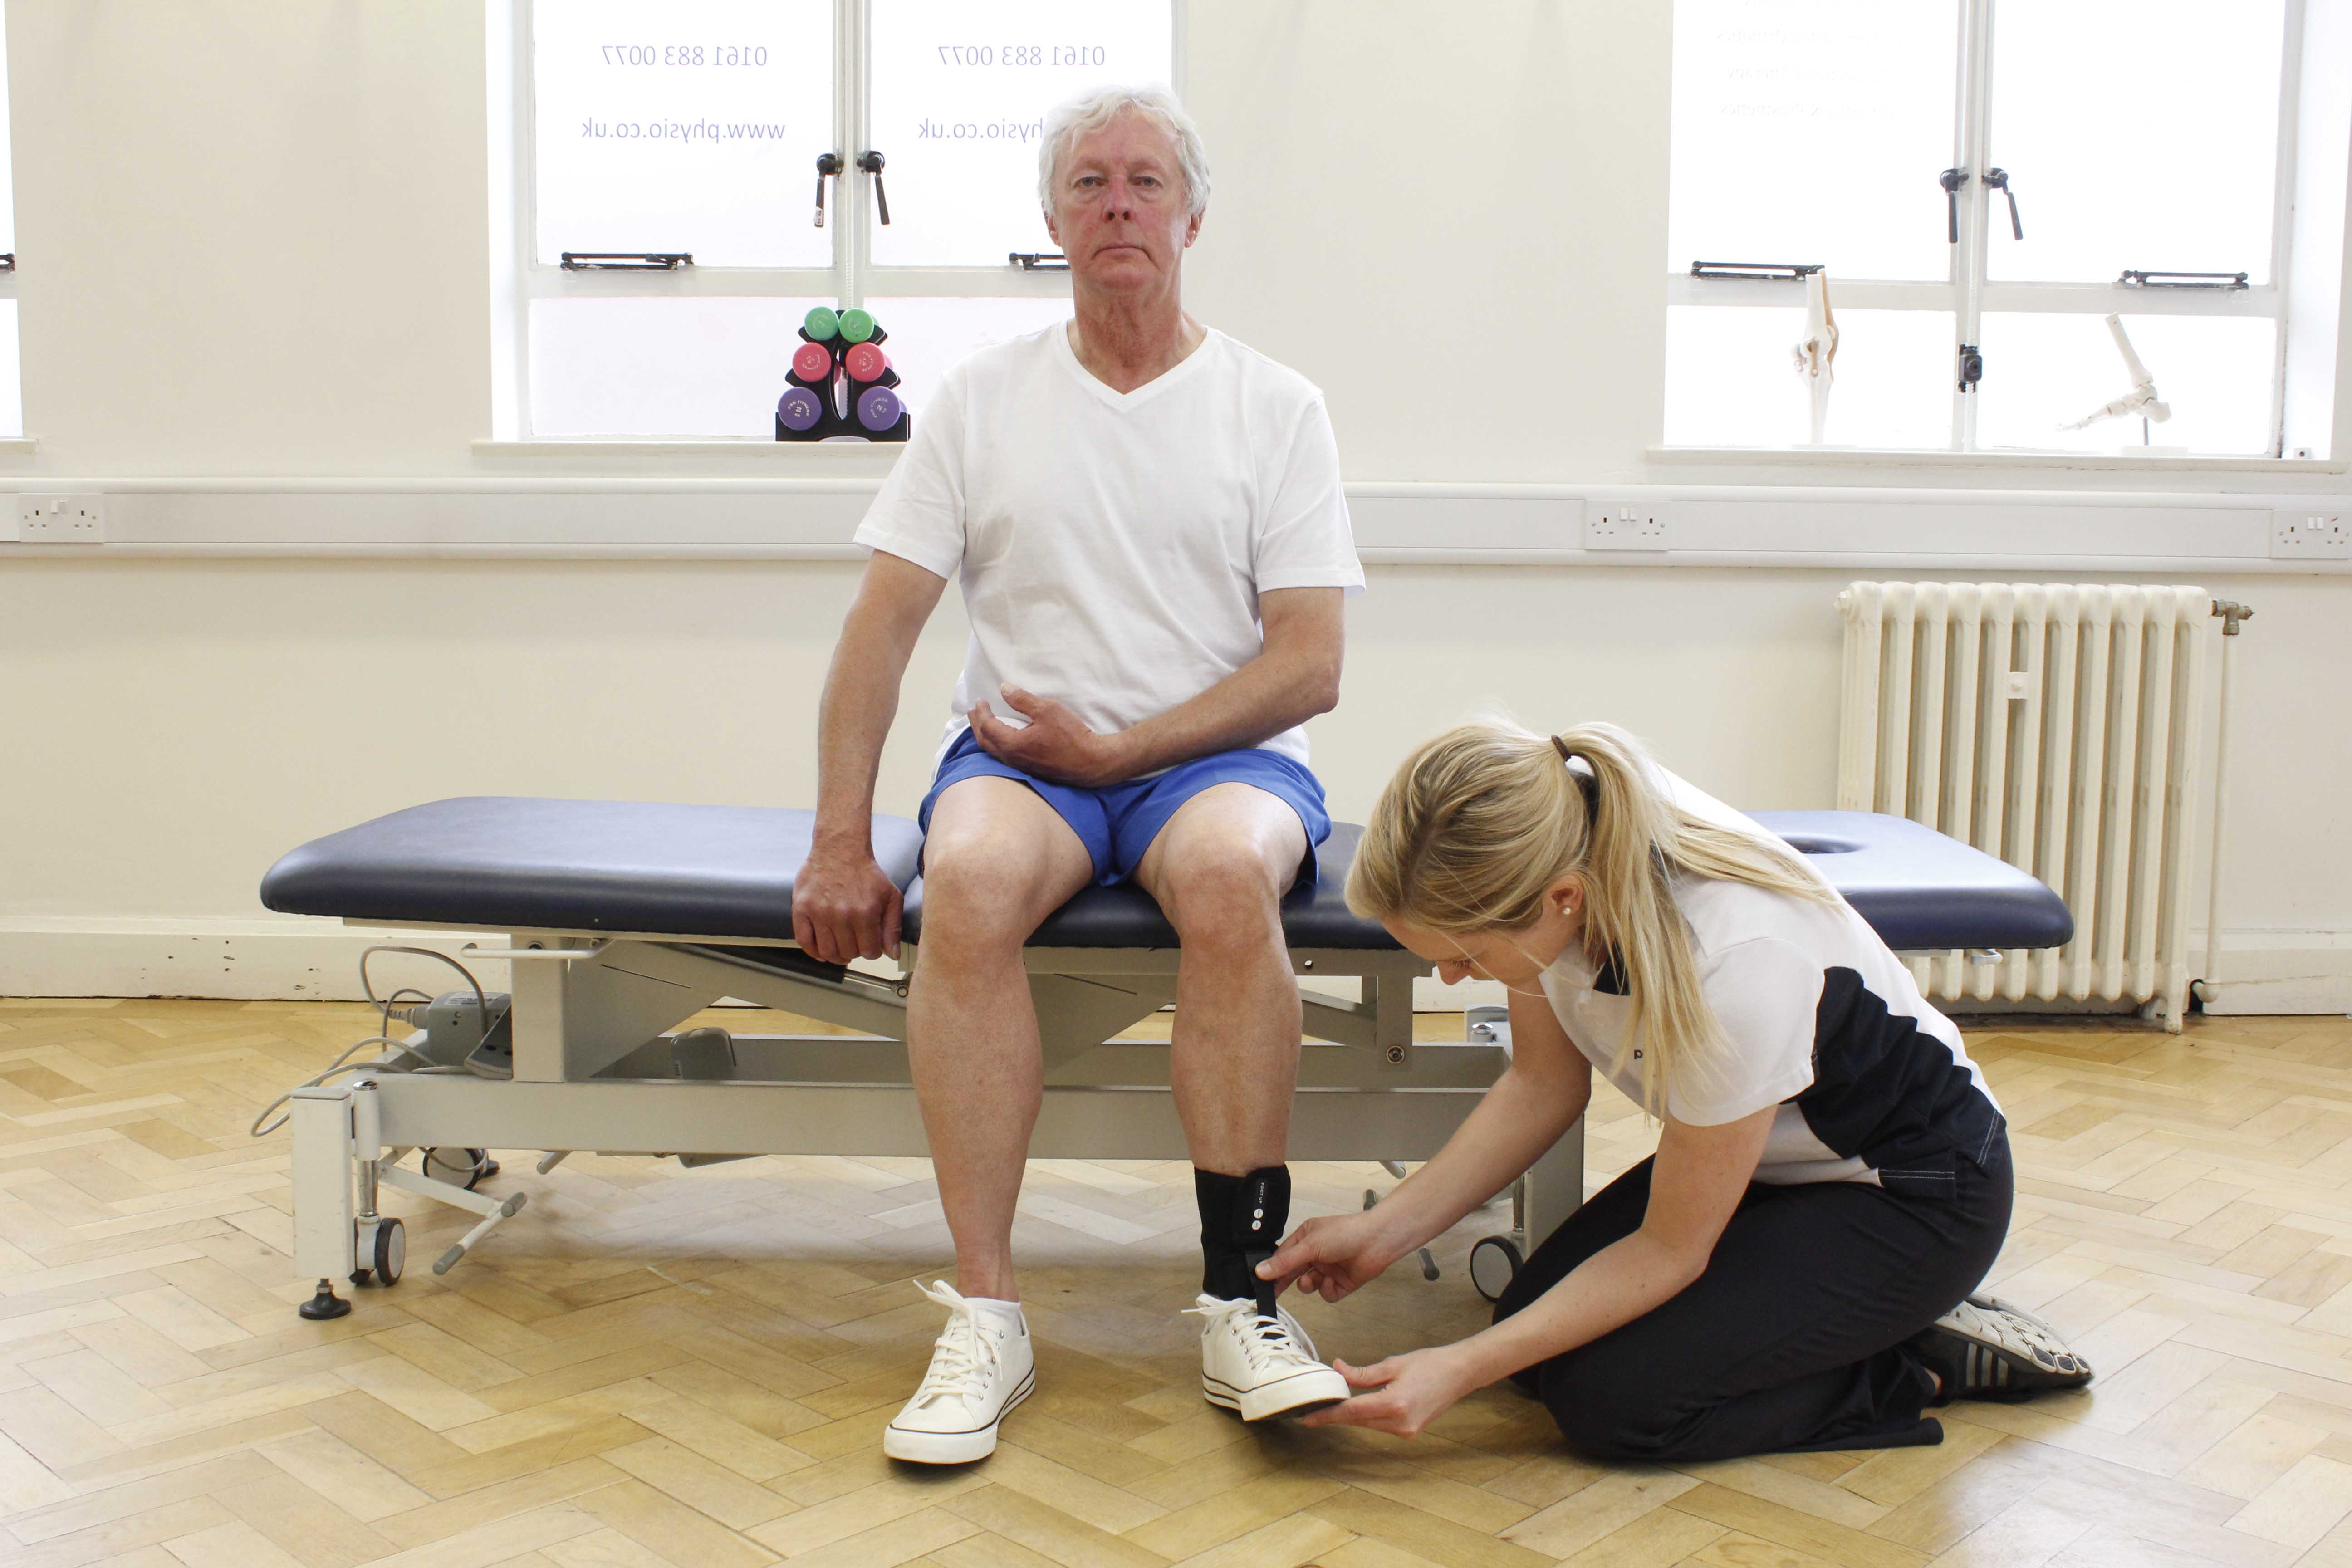 Orthotic to prevent the immobility of the ankle from limiting the clients normal movement